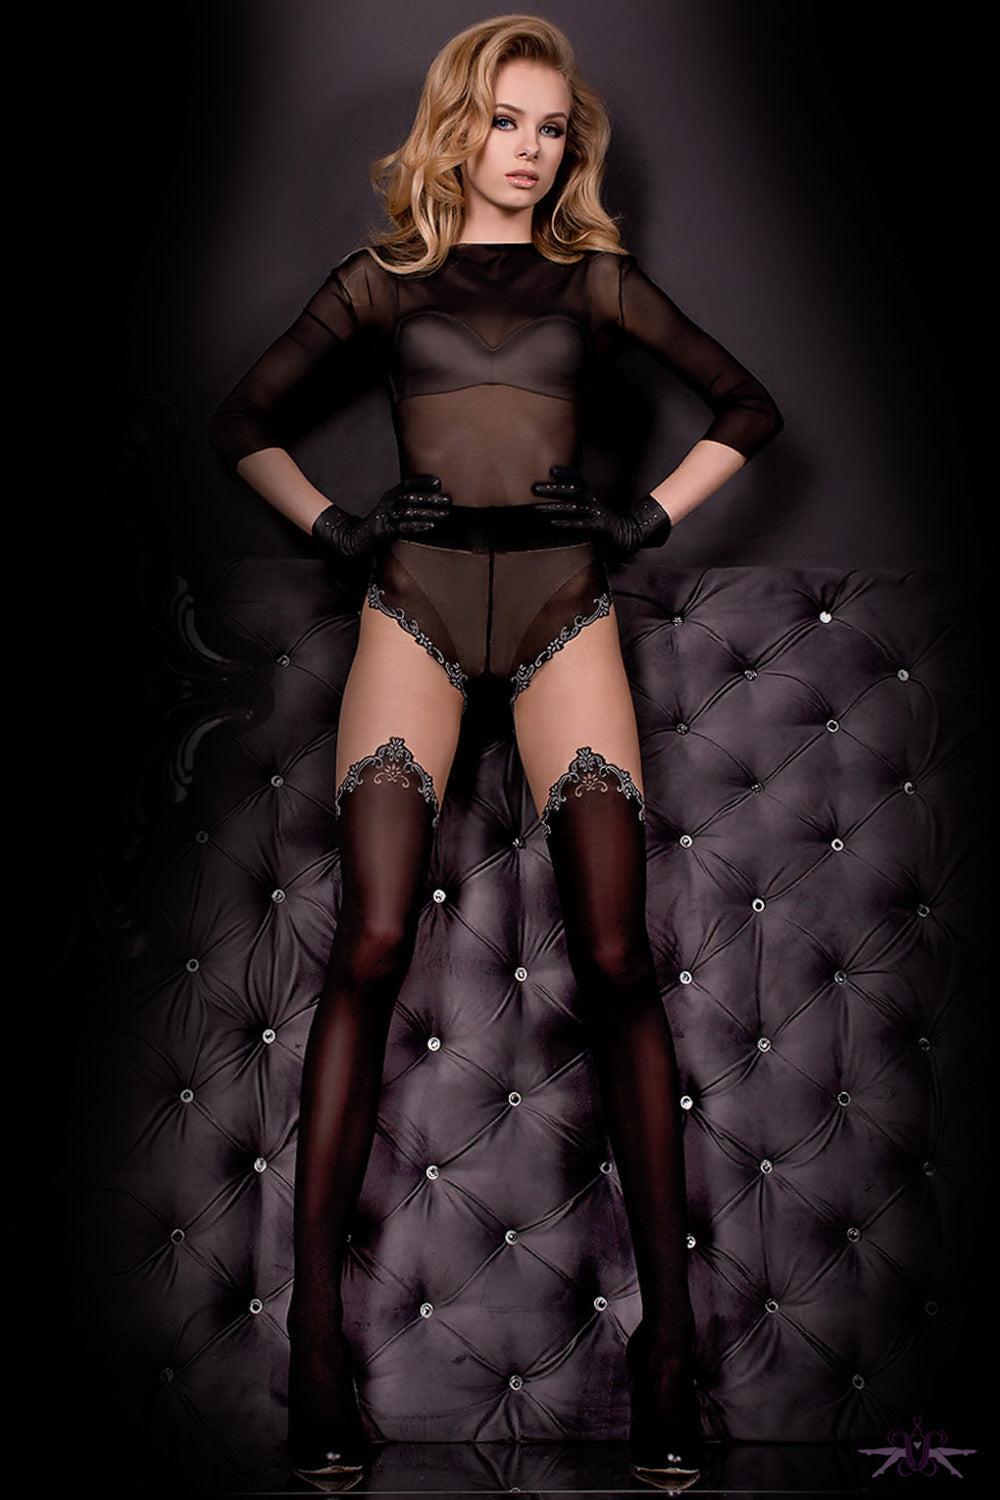 Ballerina Black Opaque and Grey Seam Tights - Mayfair Stockings